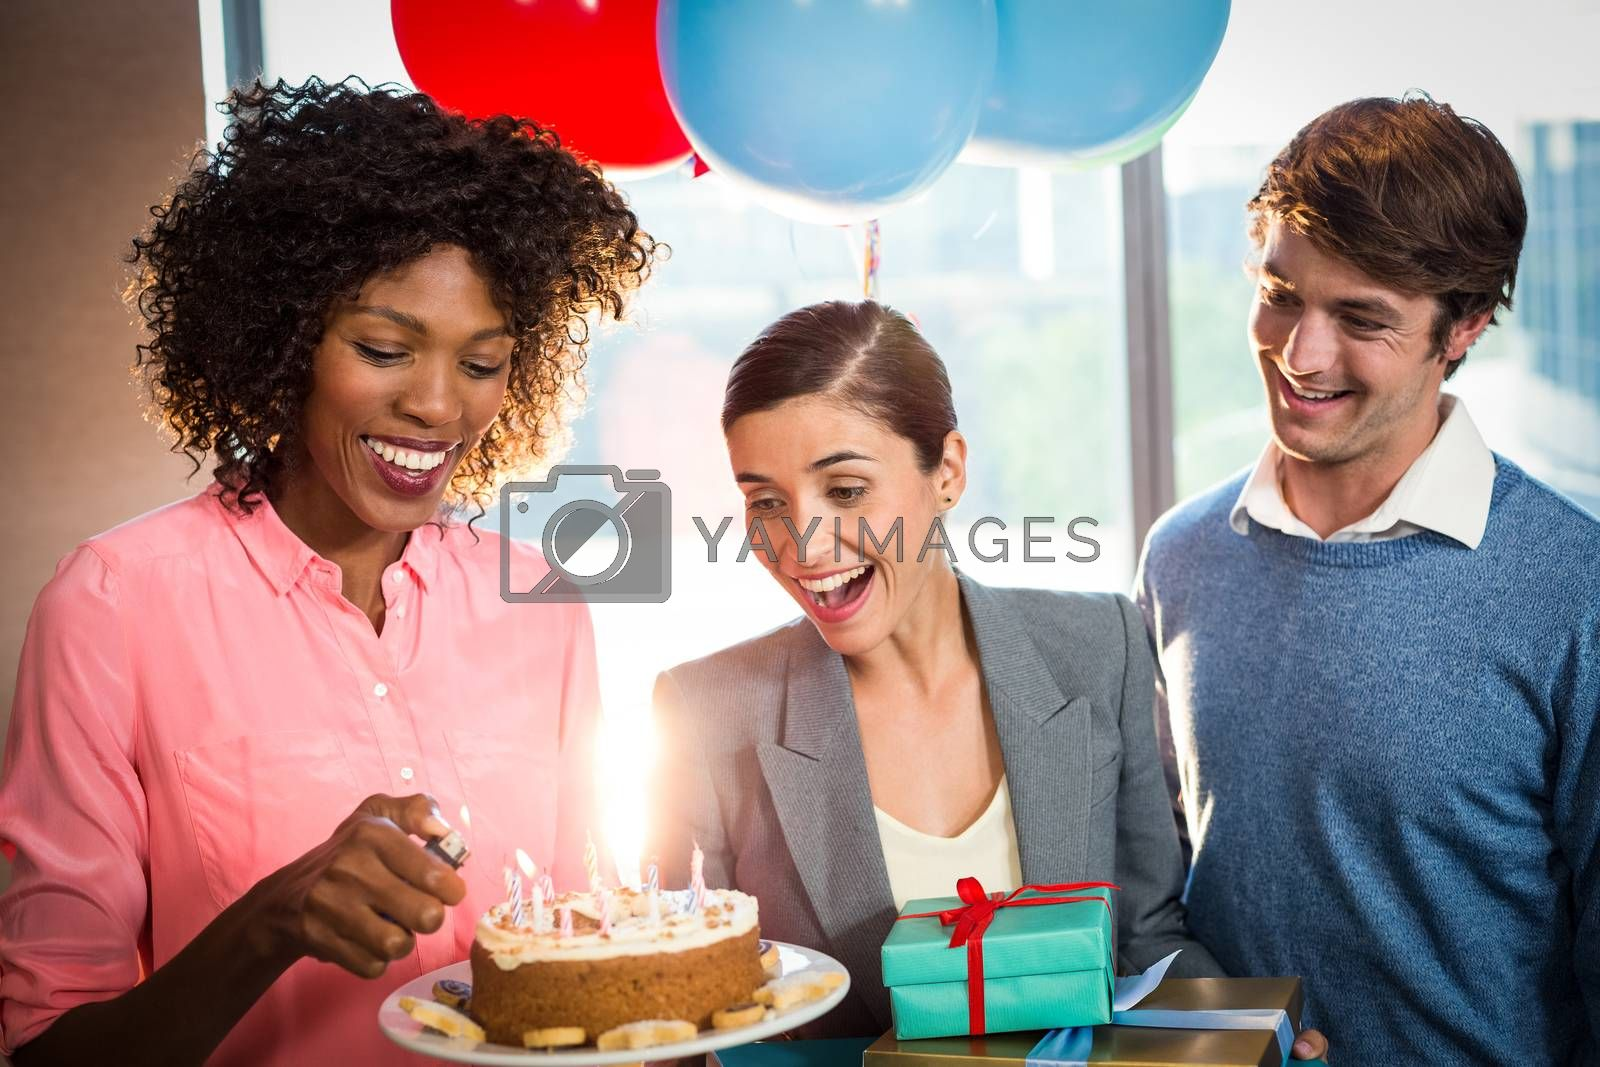 Business people celebrating birthday by Wavebreakmedia